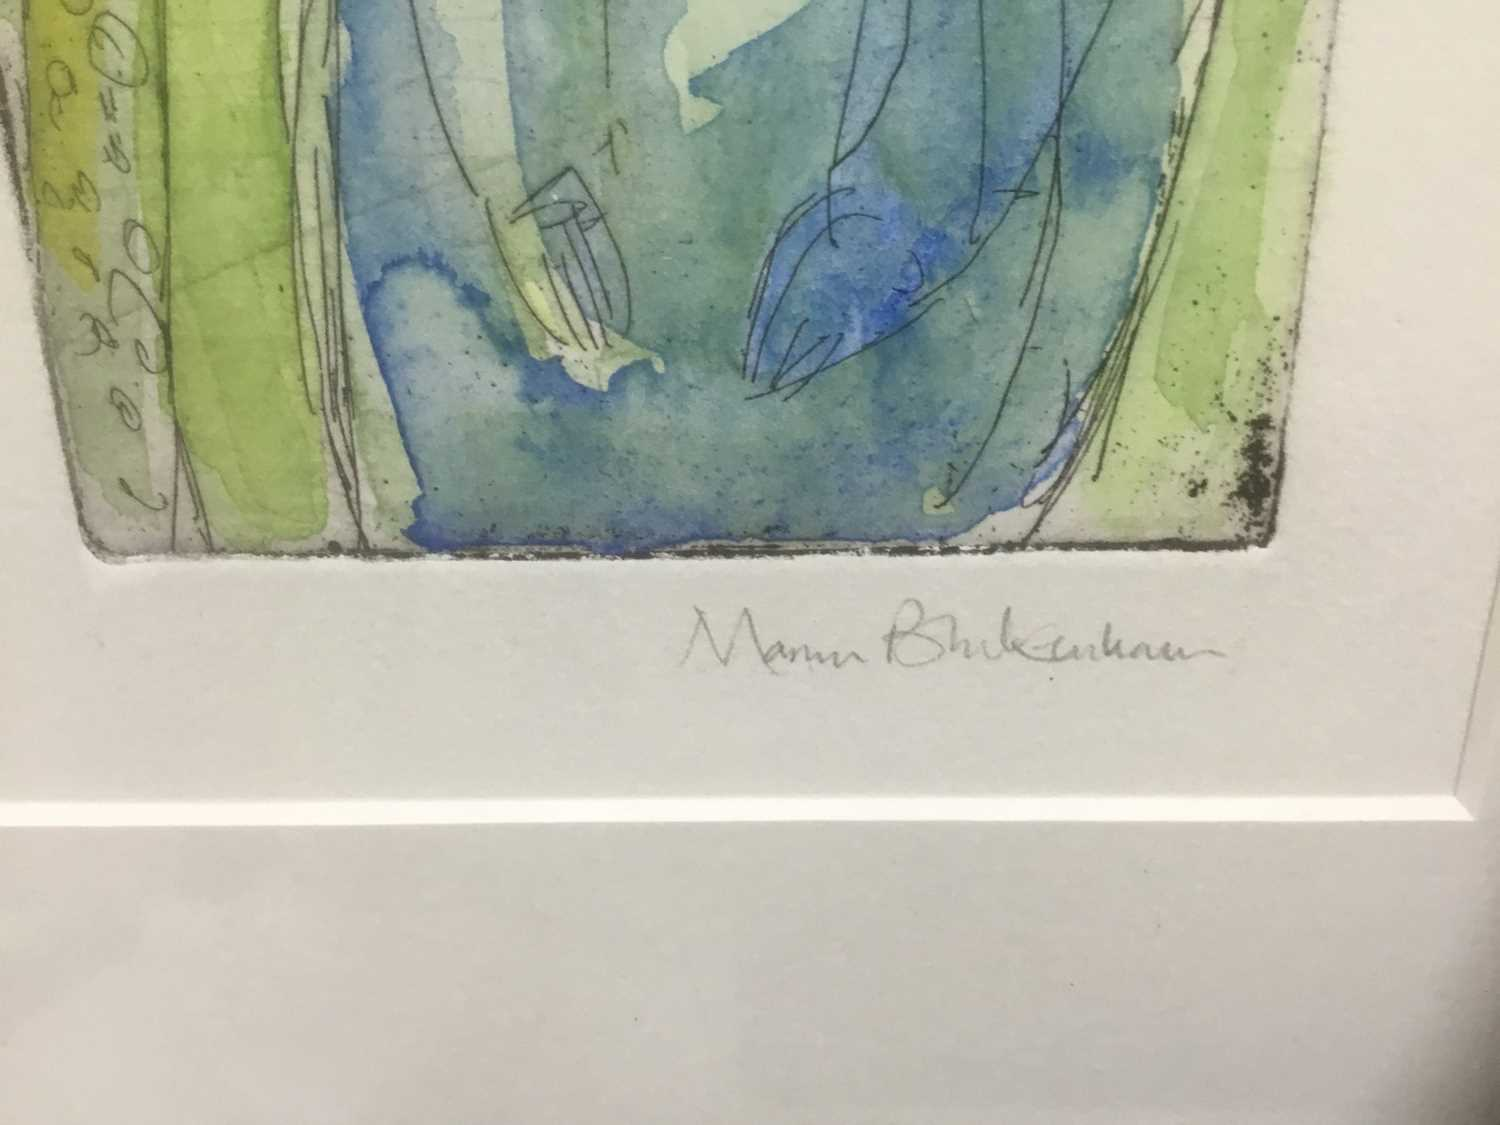 Marcia Blakenham (b. 1946), two signed etchings - figures, one numbered 15/16, in glazed frames - Image 8 of 9